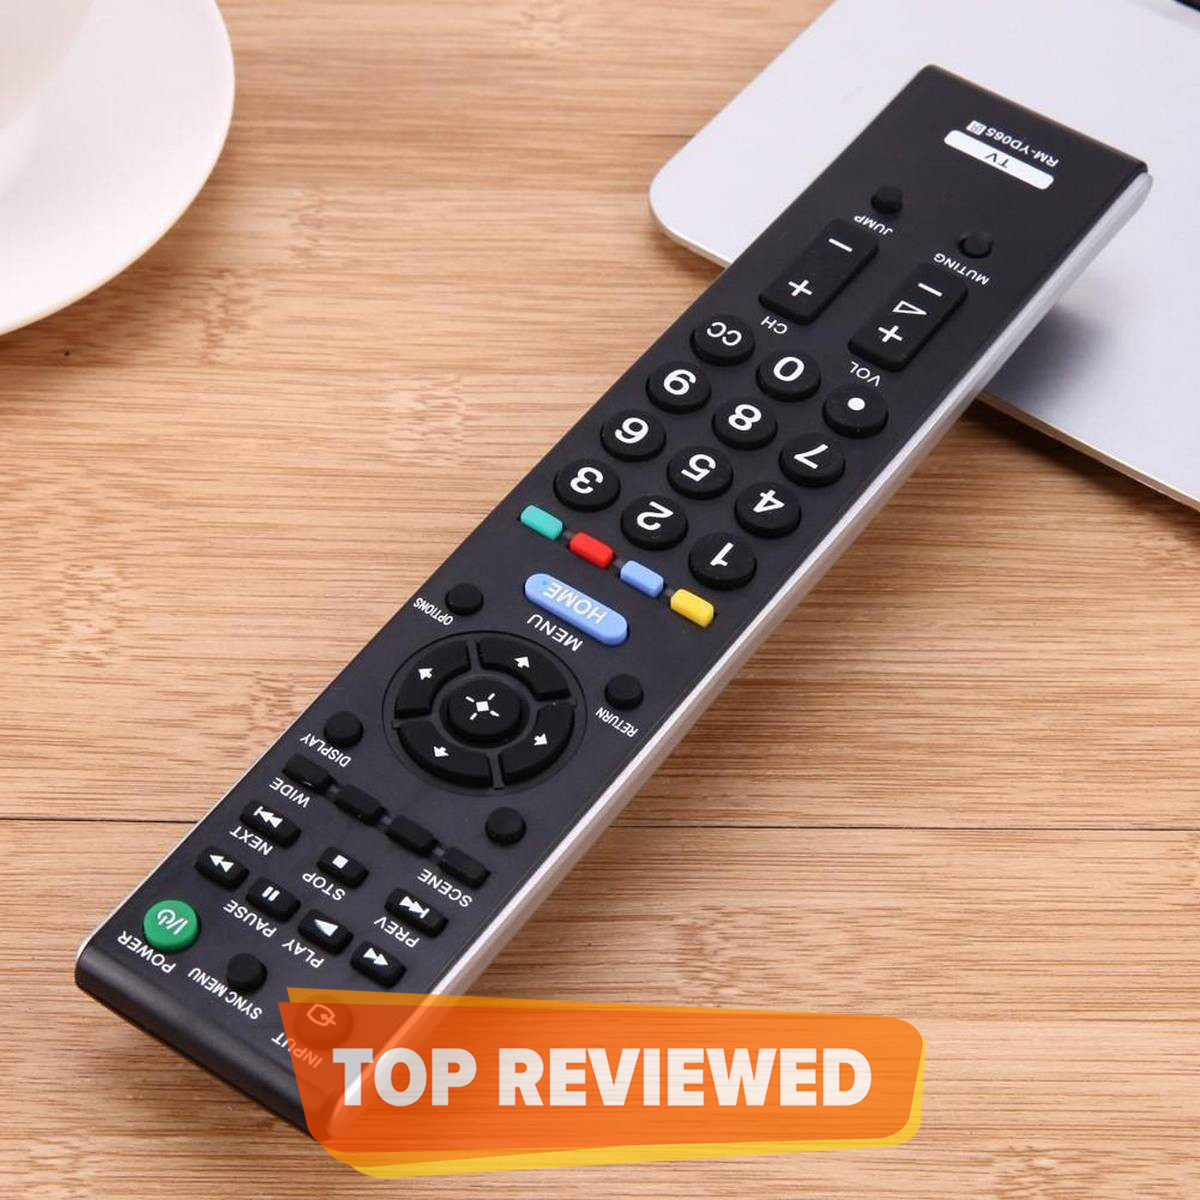 Universal Remote For Sony Led & Lcd Tv - Black Work all model LCD and LED TV Old and New Rm-D764